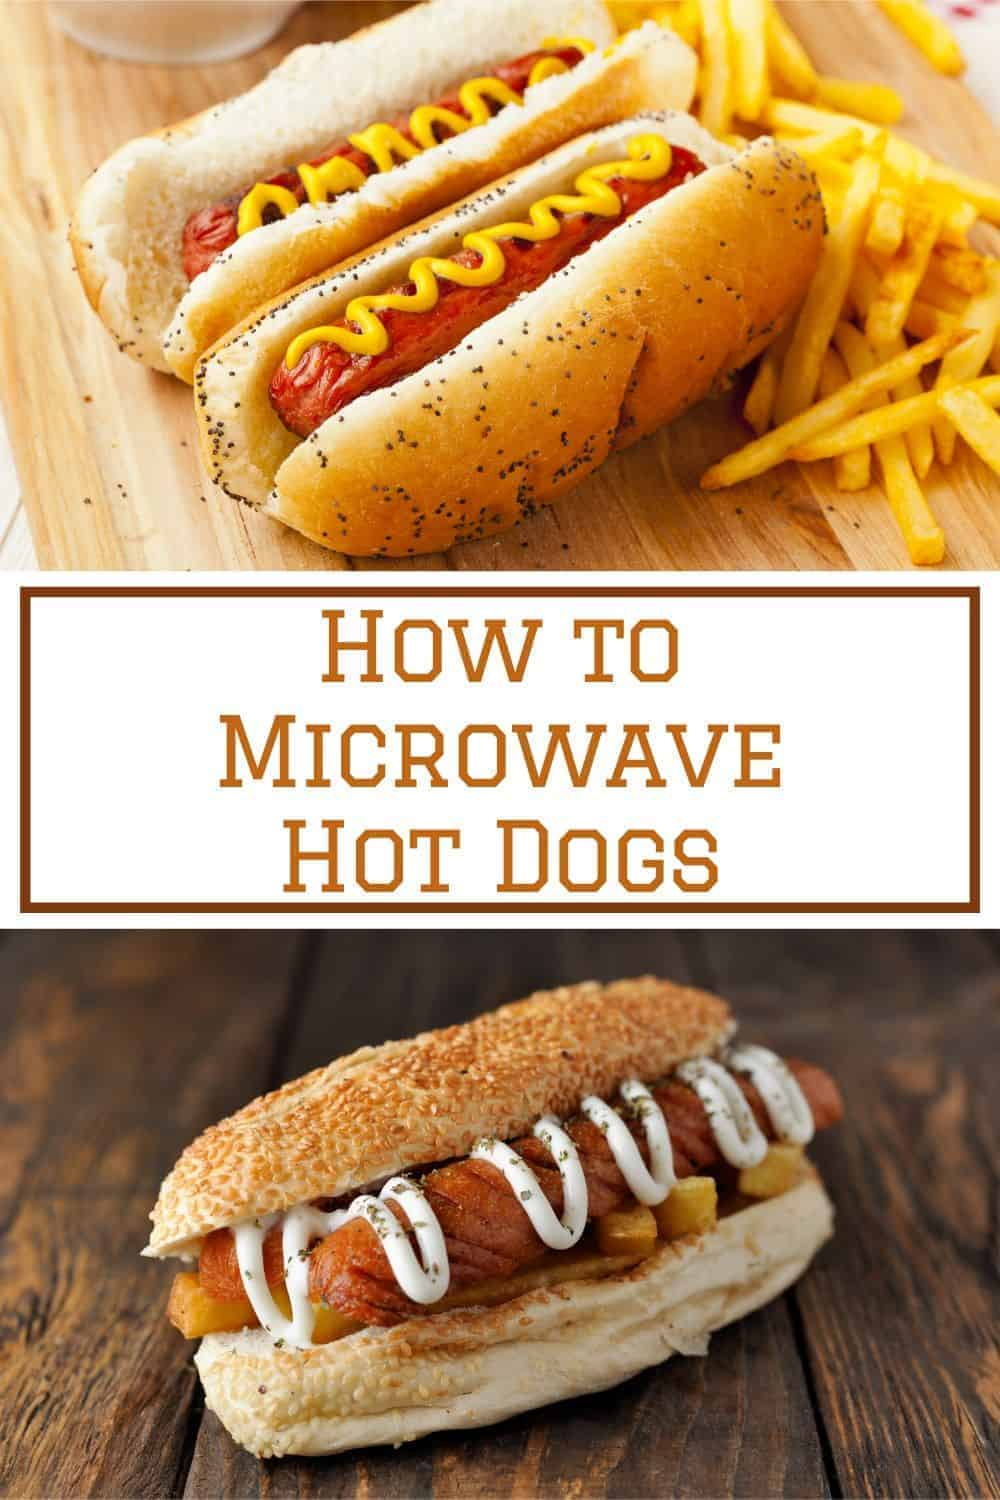 how to microwave hot dogs that taste good